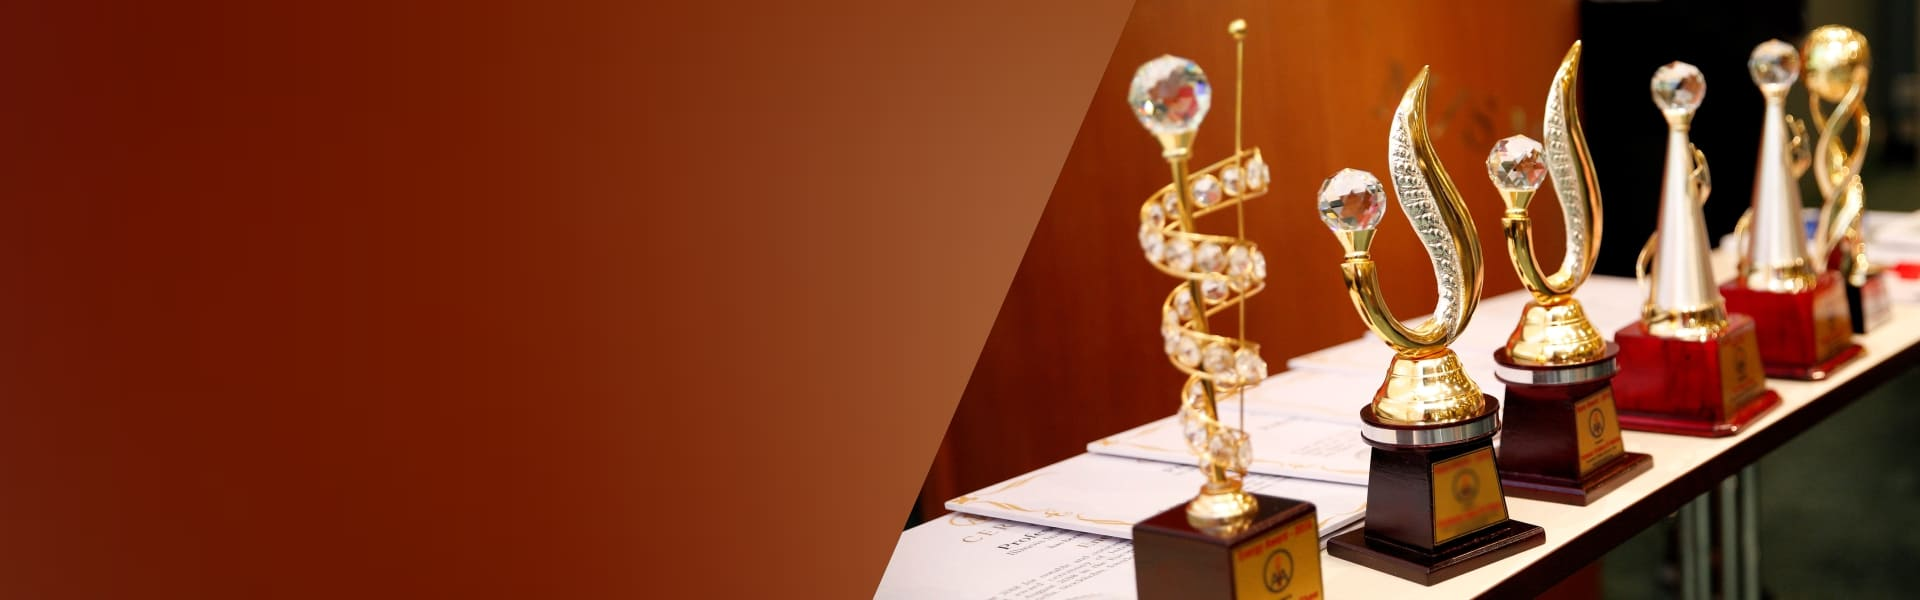 Recognizing Scientific Community Members With Awards to inspire Good Research